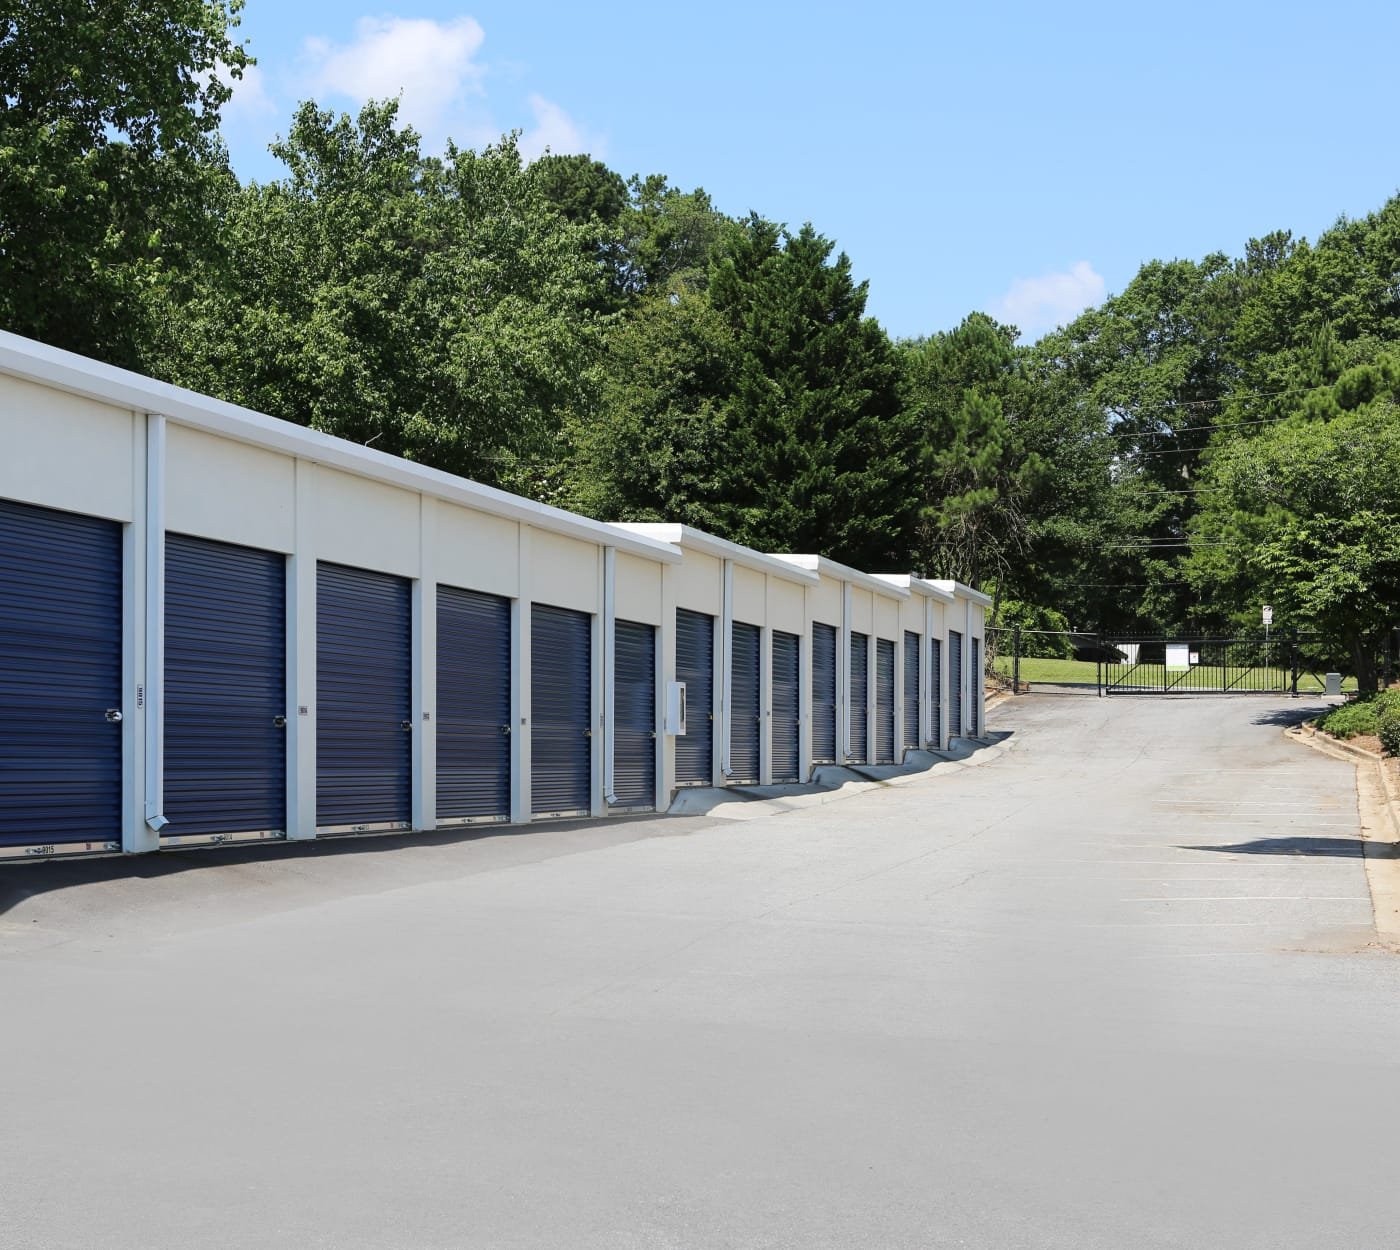 Ground-floor unit at Midgard Self Storage in Greenville, South Carolina